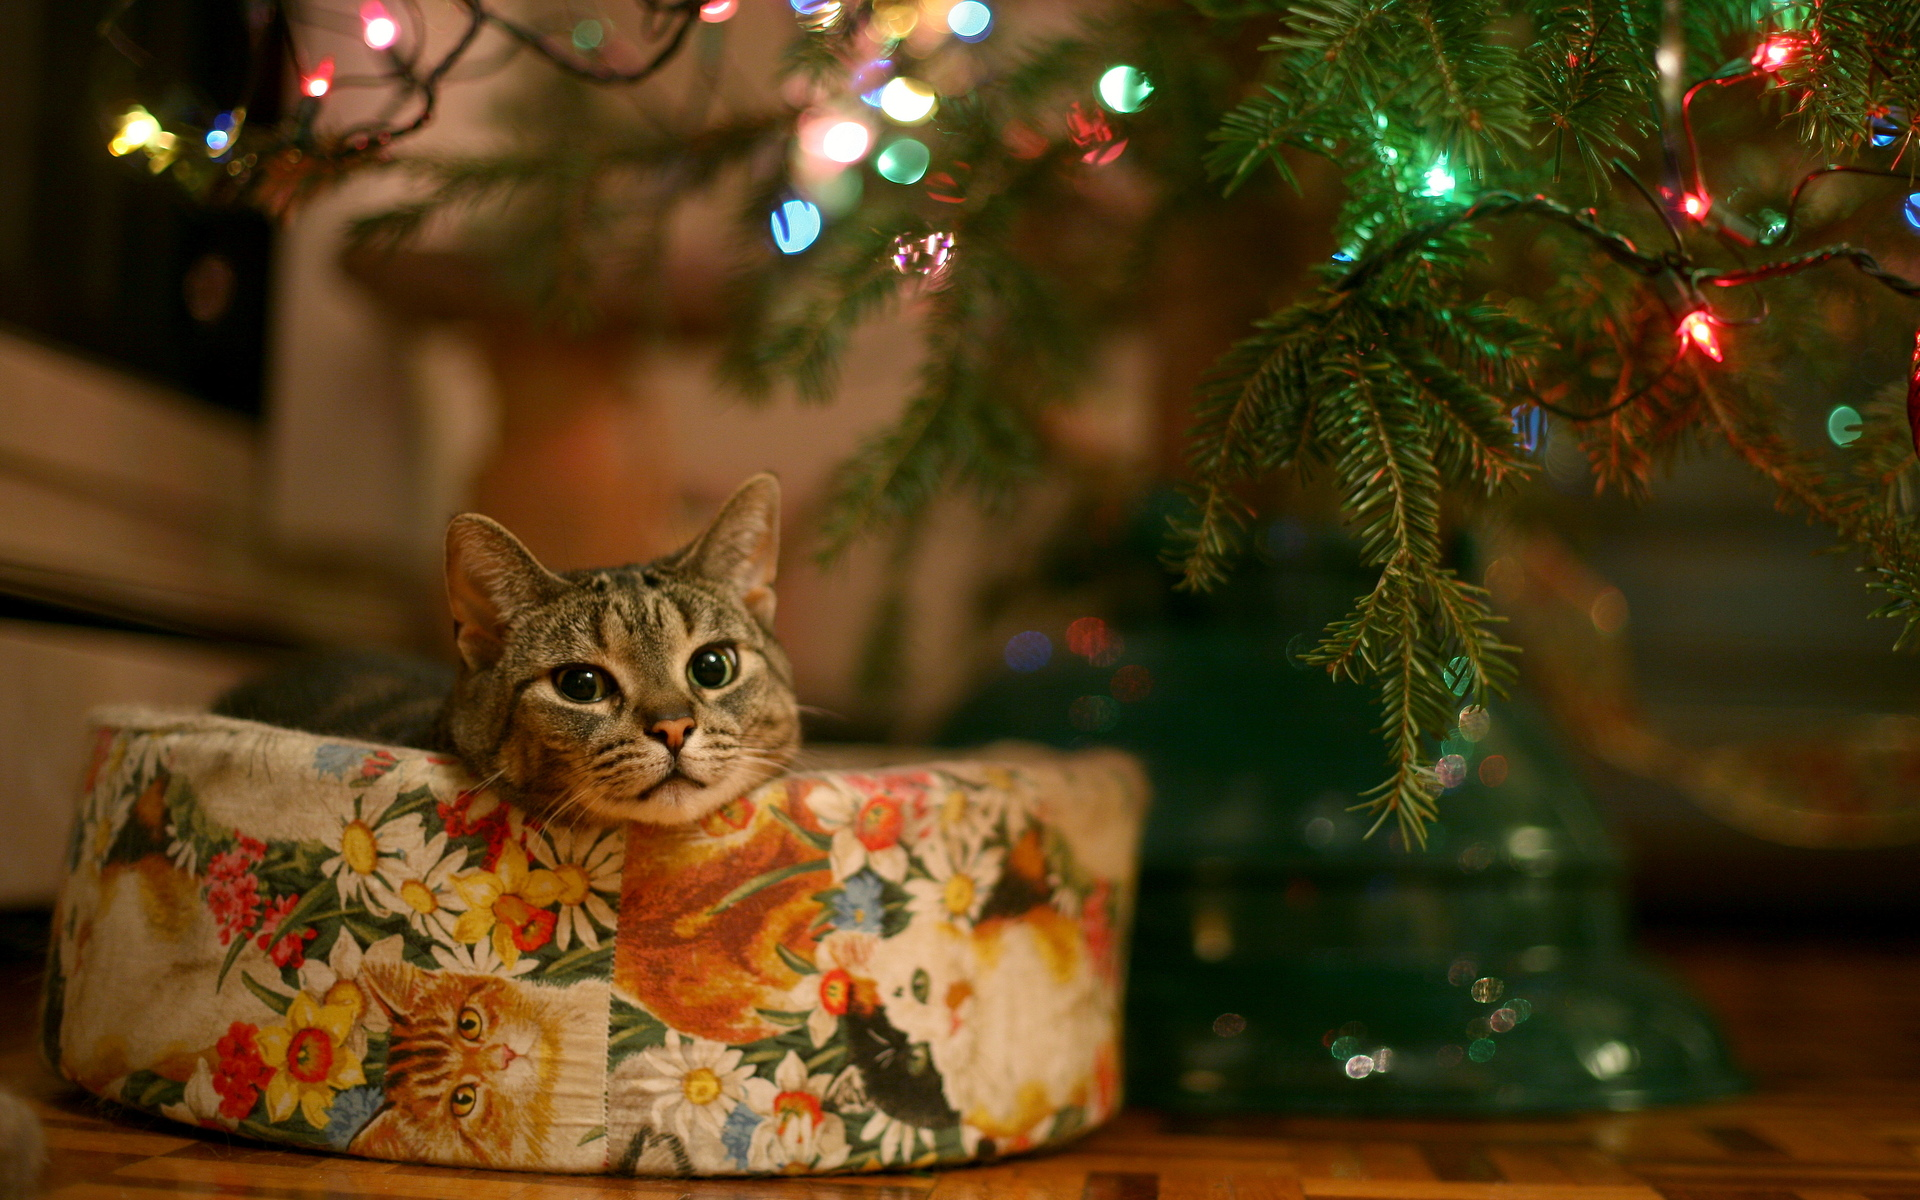 Christmas cat cute wallpapers Christmas tree cat tower